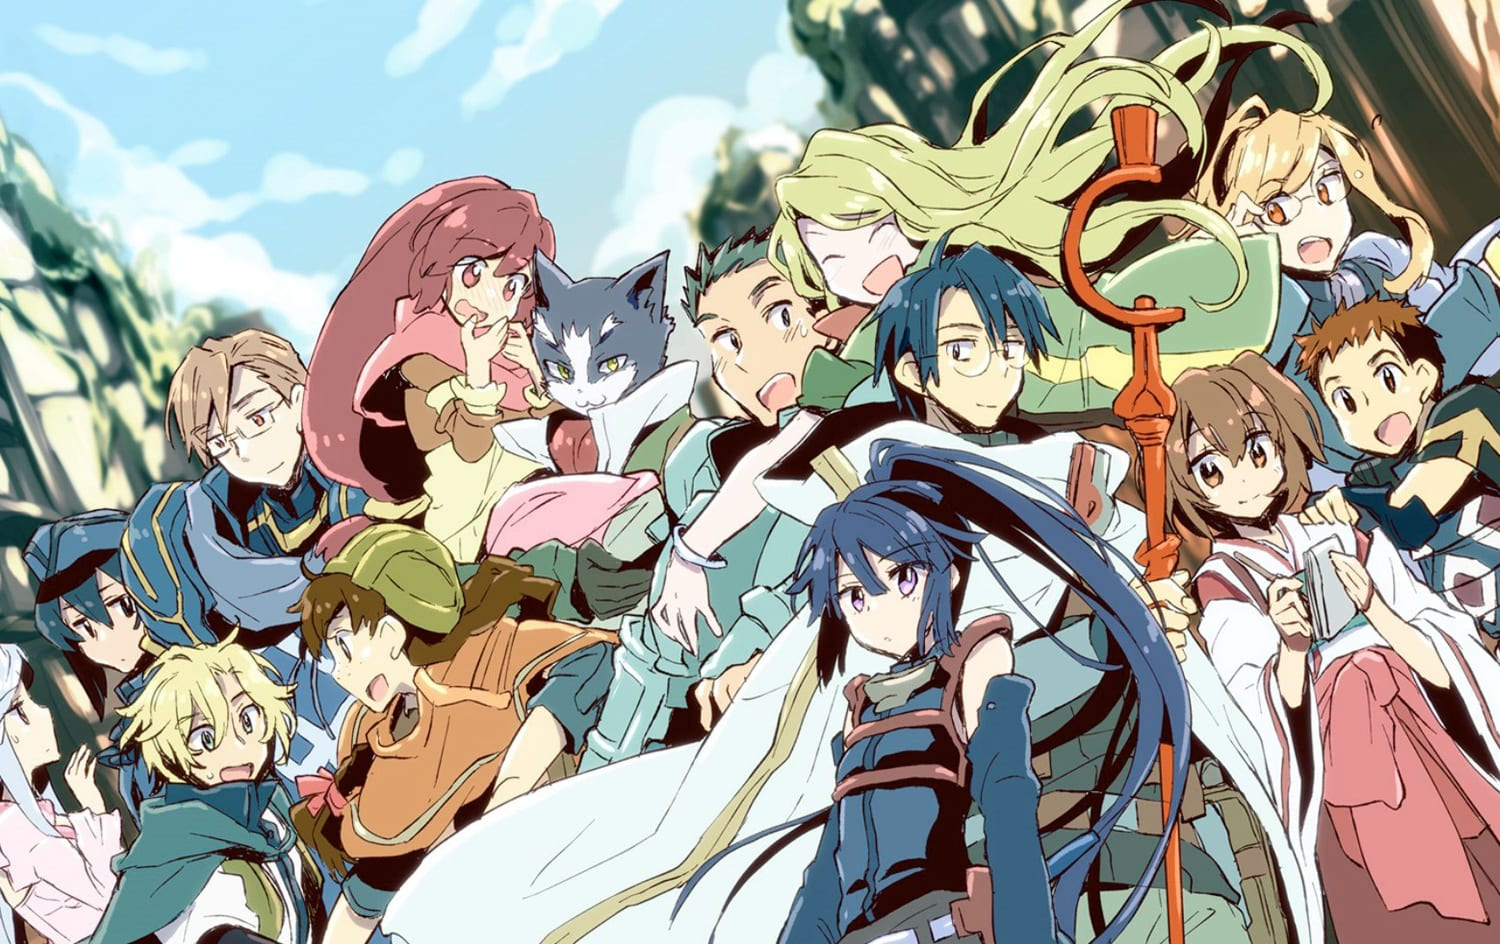 Log Horizon Season 3 Episode 7 Release Date, Spoilers & Watch Online